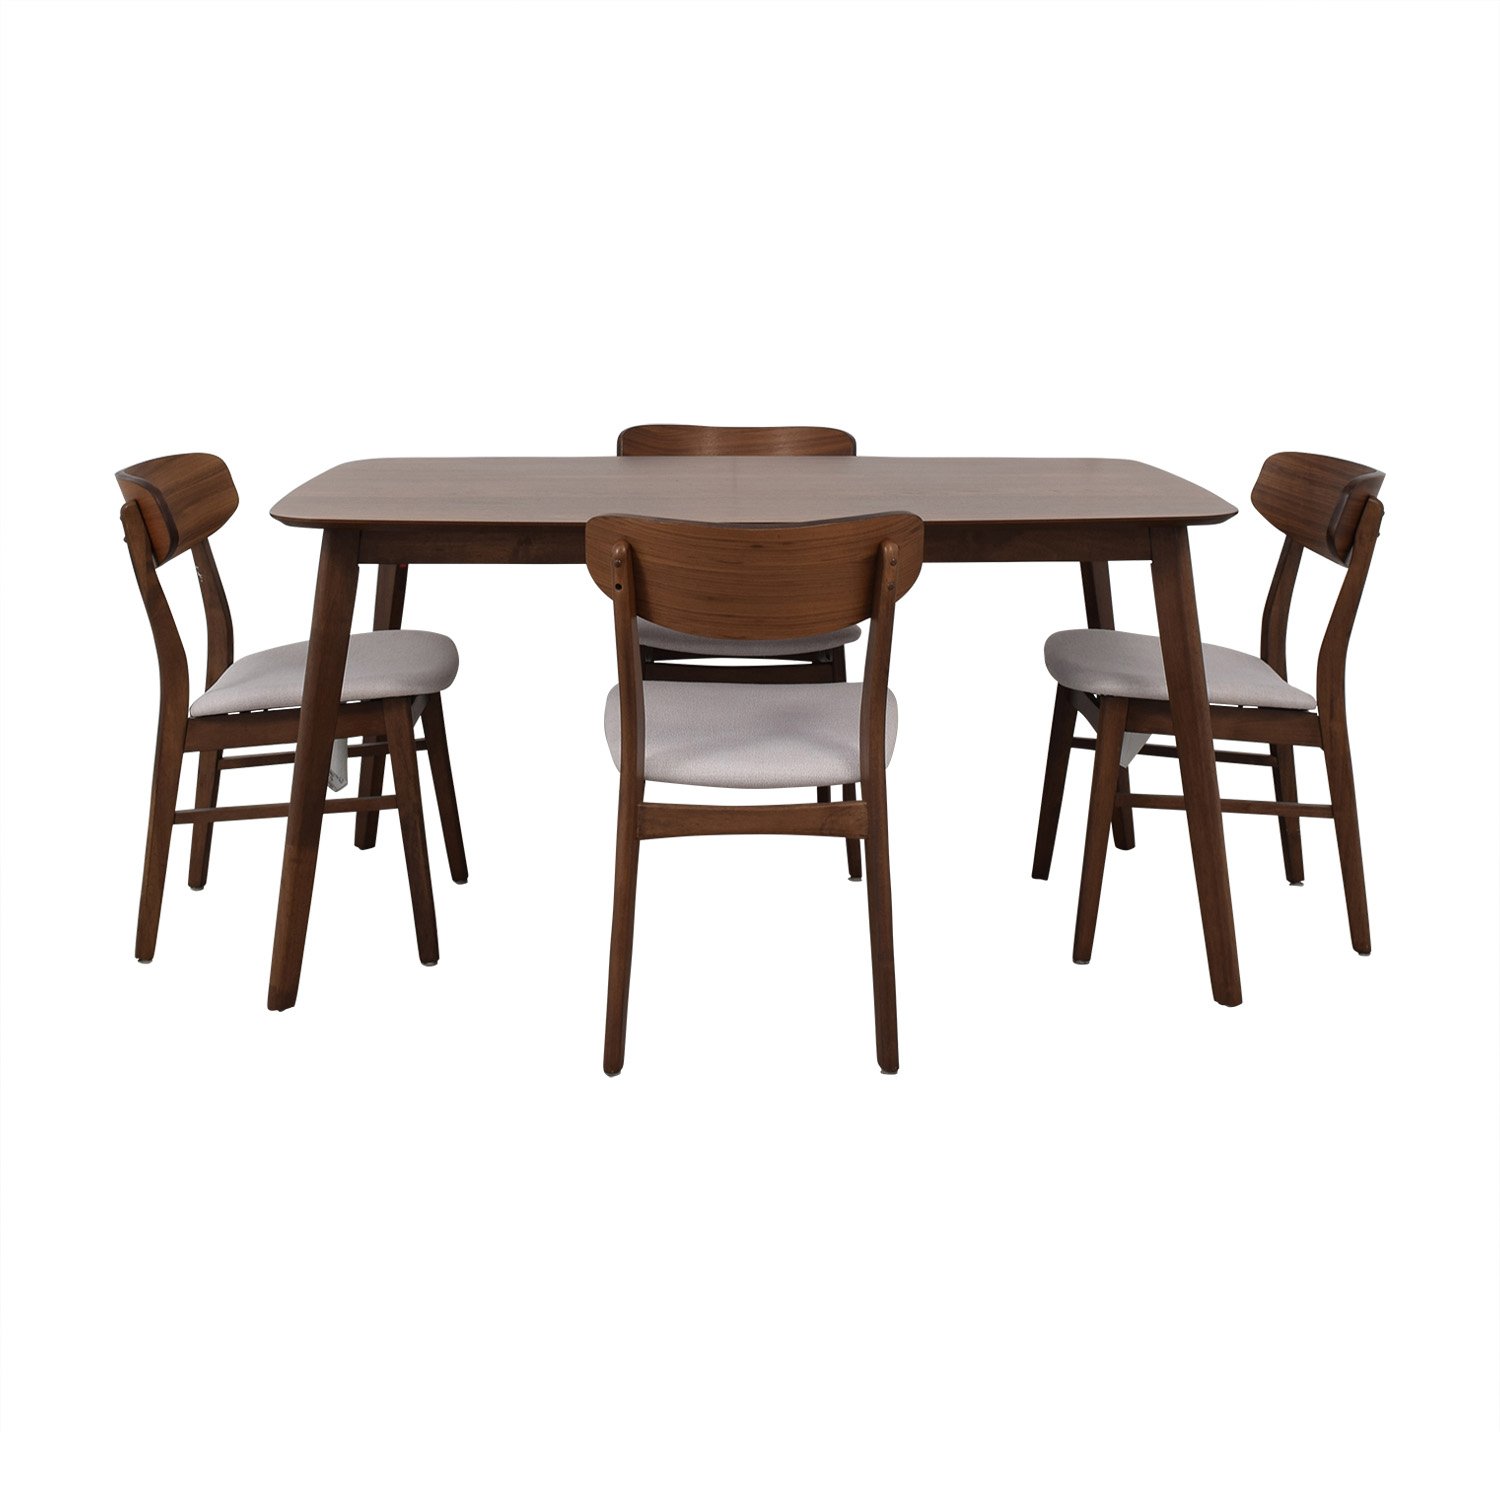 Amazing 49 Off Allmodern All Modern Upholstered Dining Set Tables Ocoug Best Dining Table And Chair Ideas Images Ocougorg